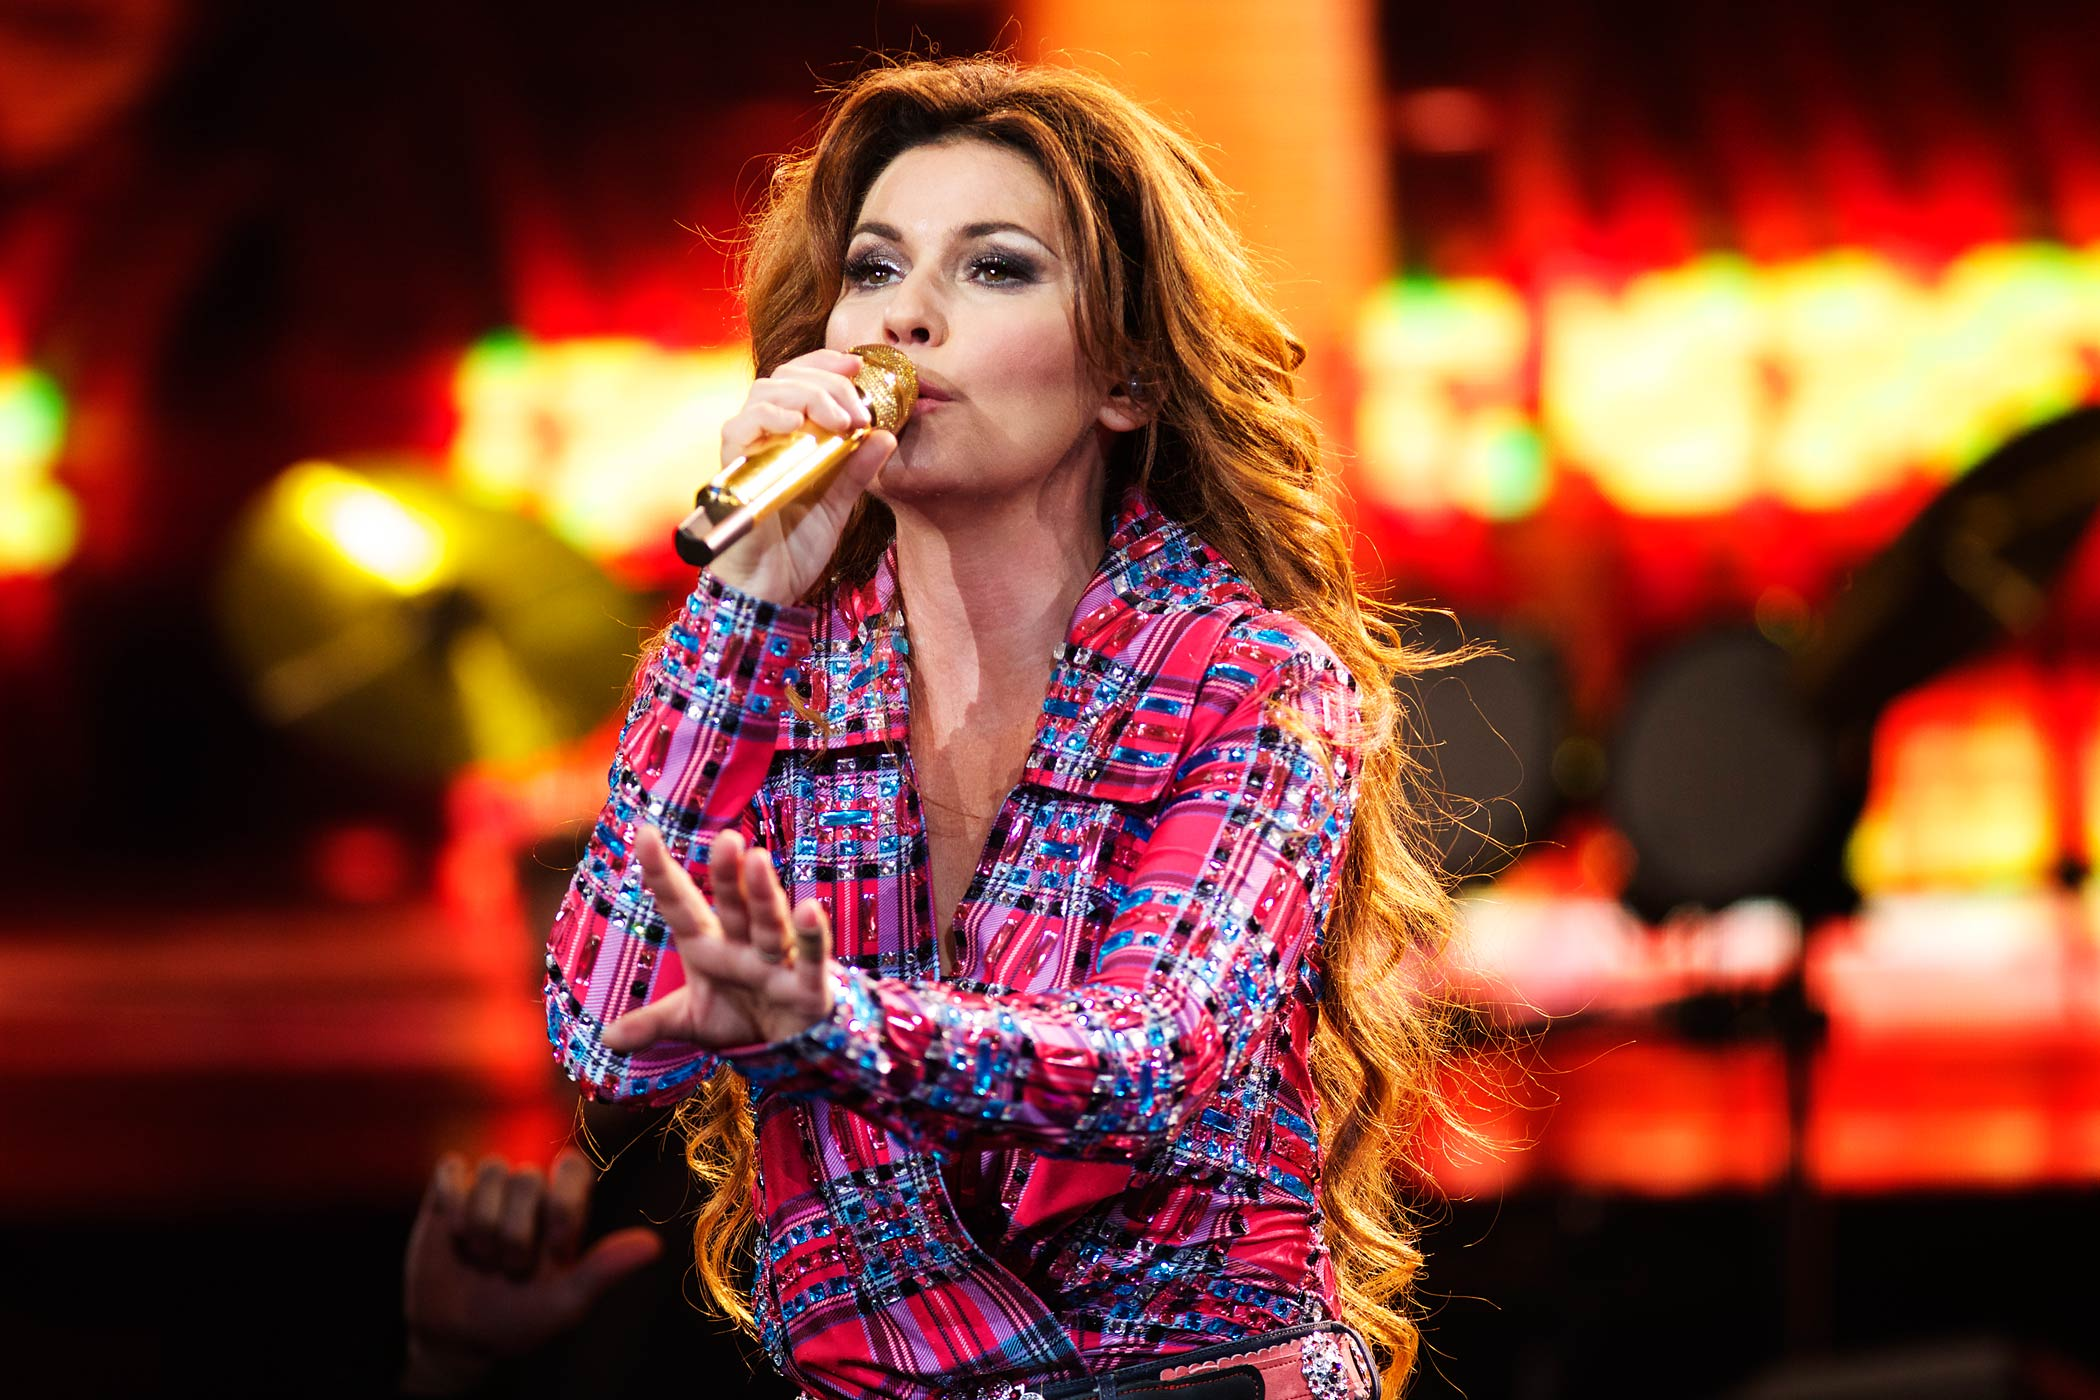 Shania Twain performs at the Calgary Stampede on July 10, 2014 in Calgary, Canada.